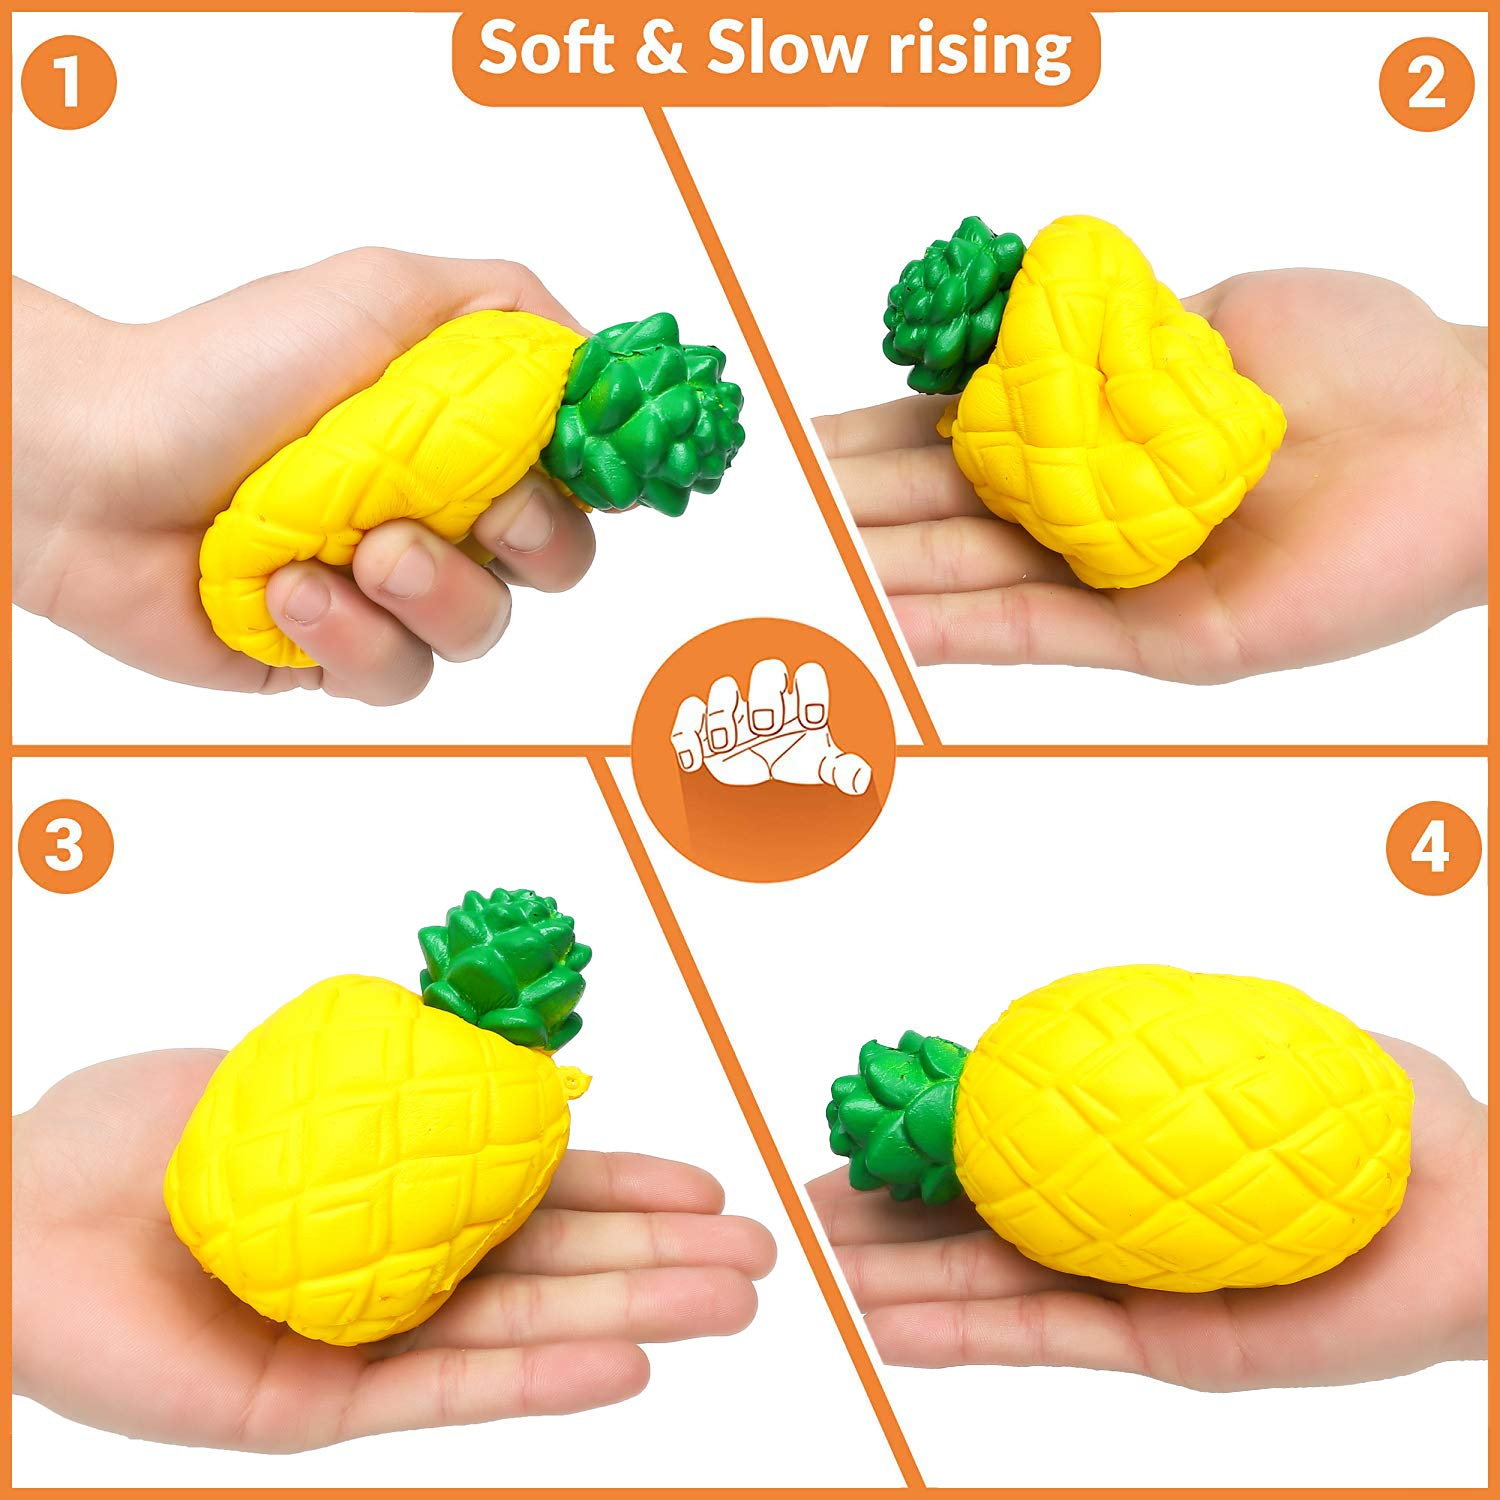 Decorative Props Party Favors SELove 7 Pcs Slow Rising Jumbo Fruit Squishies Set-Pineapple Strawberry Watermelon Apple Lemon Pear Banana Kawaii Cream Scented Stress Relief Toy Hop Props